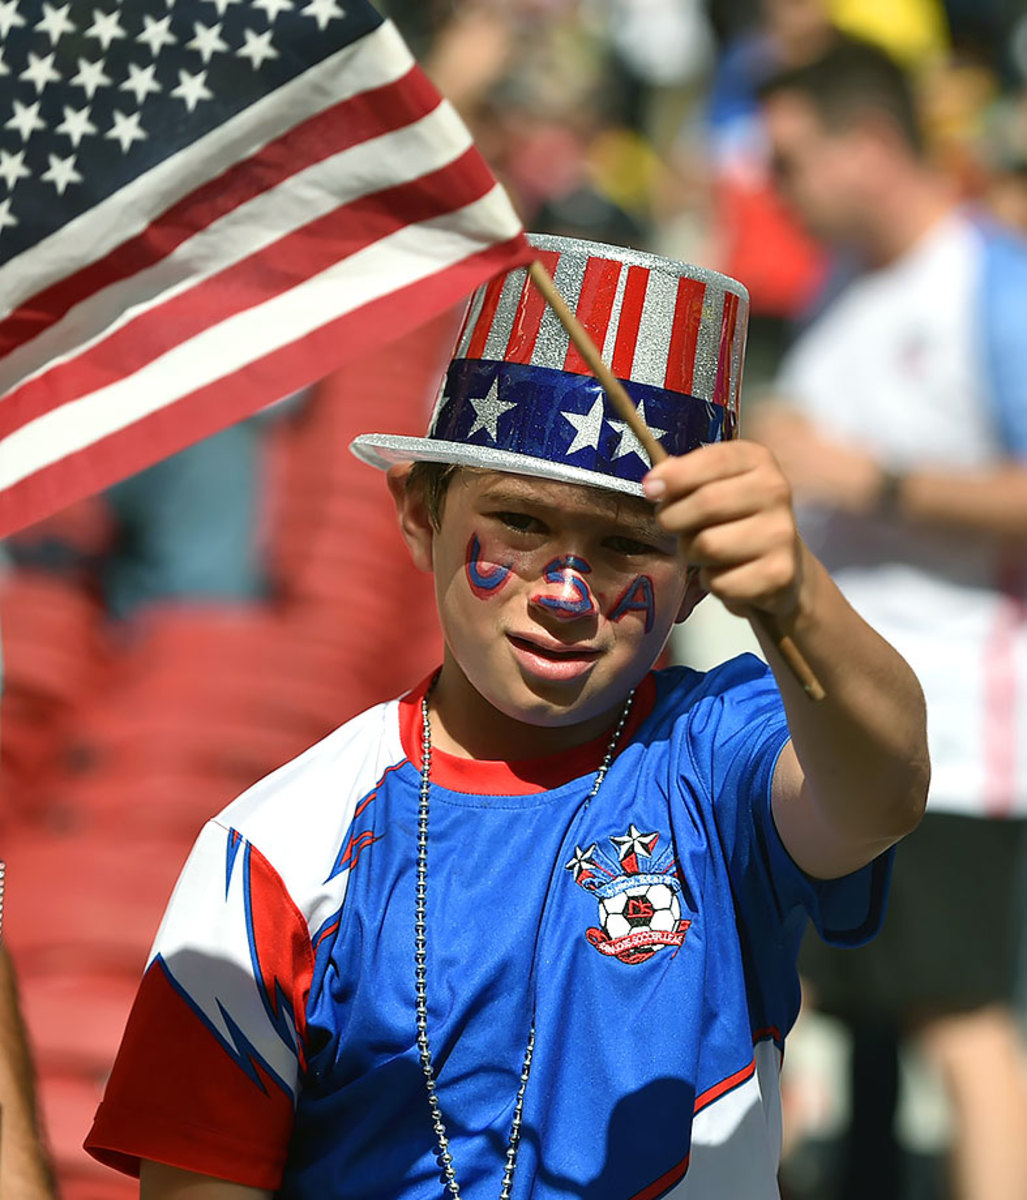 USA-fans-GettyImages-537951574_master.jpg